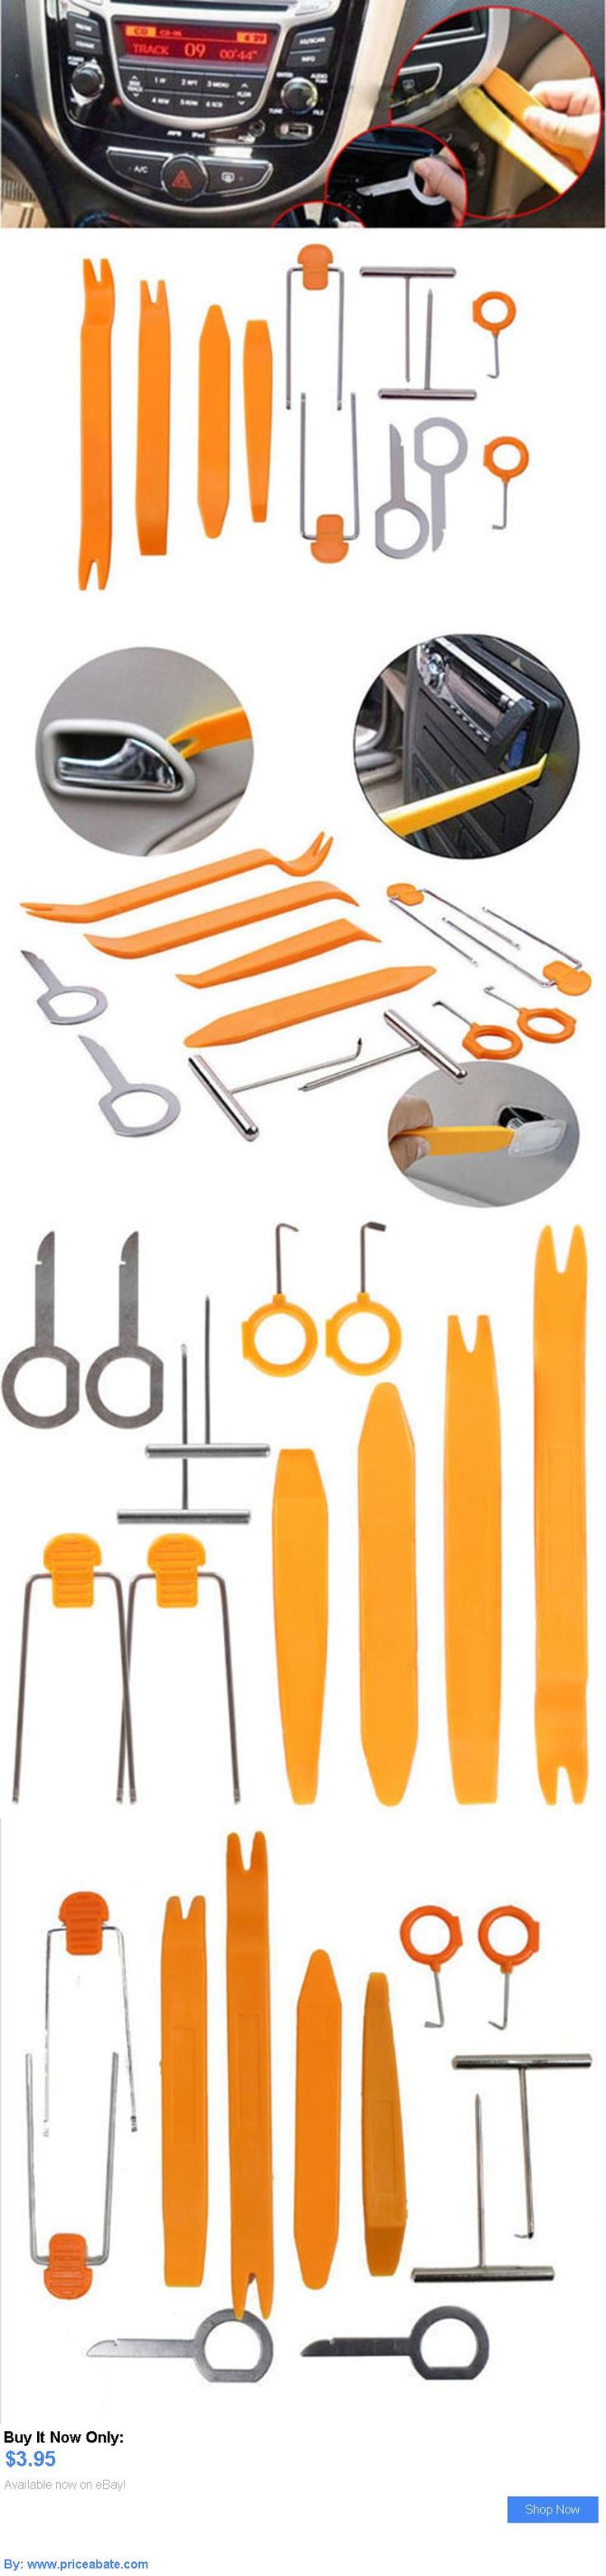 Car Audio Video And GPS: 12Pcs Professional Car Auto Dismantle Tools Set For Gps Video And Audio System BUY IT NOW ONLY: $3.95 #priceabateCarAudioVideoAndGPS OR #priceabate